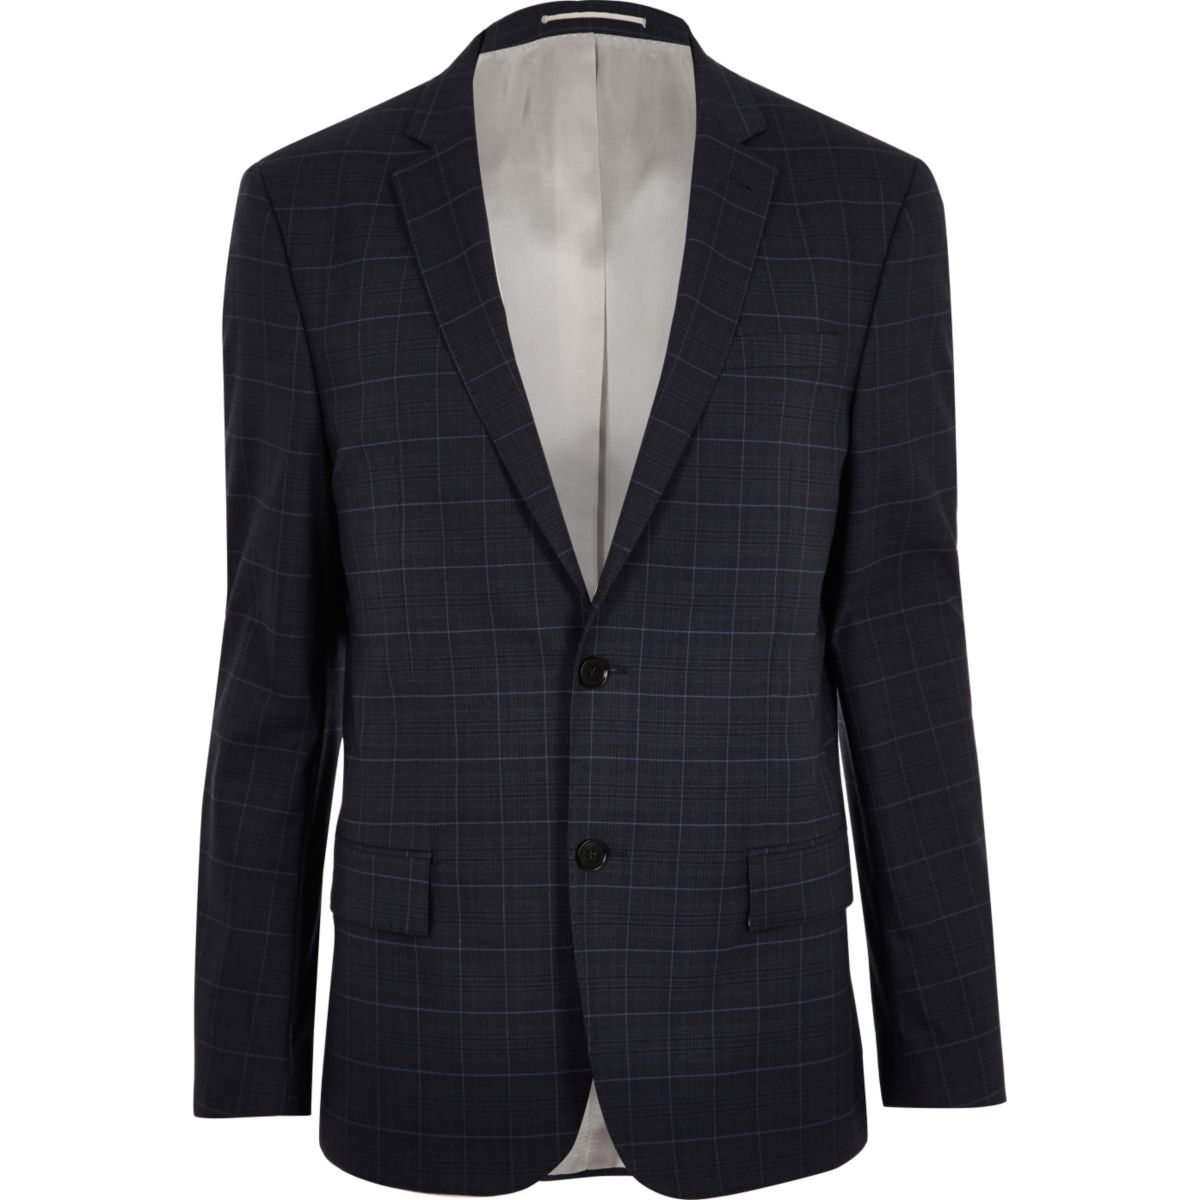 Blue window pane slim suit jacket